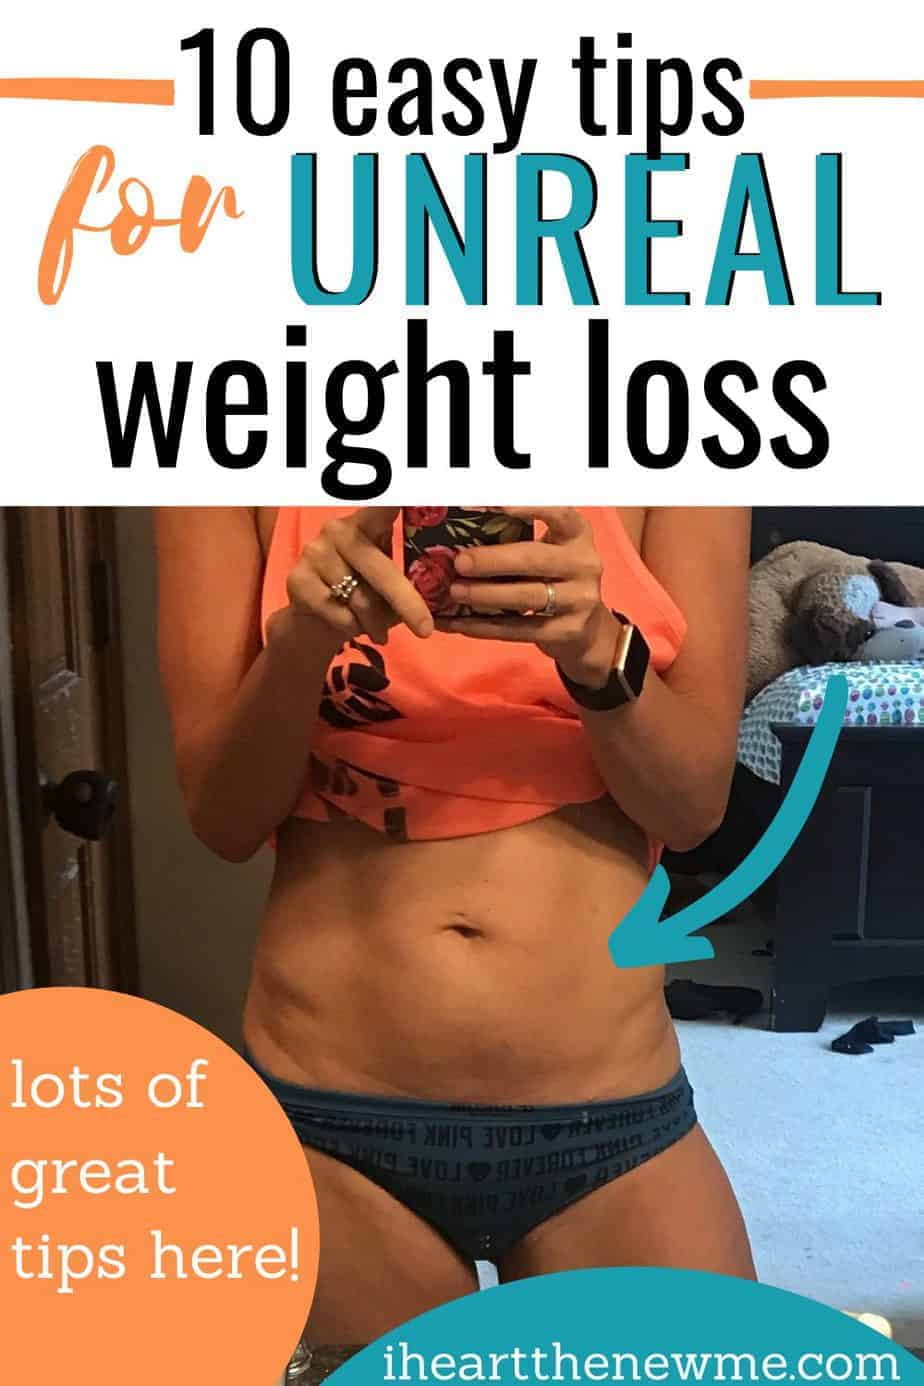 Tips to lose weight quickly and easily!